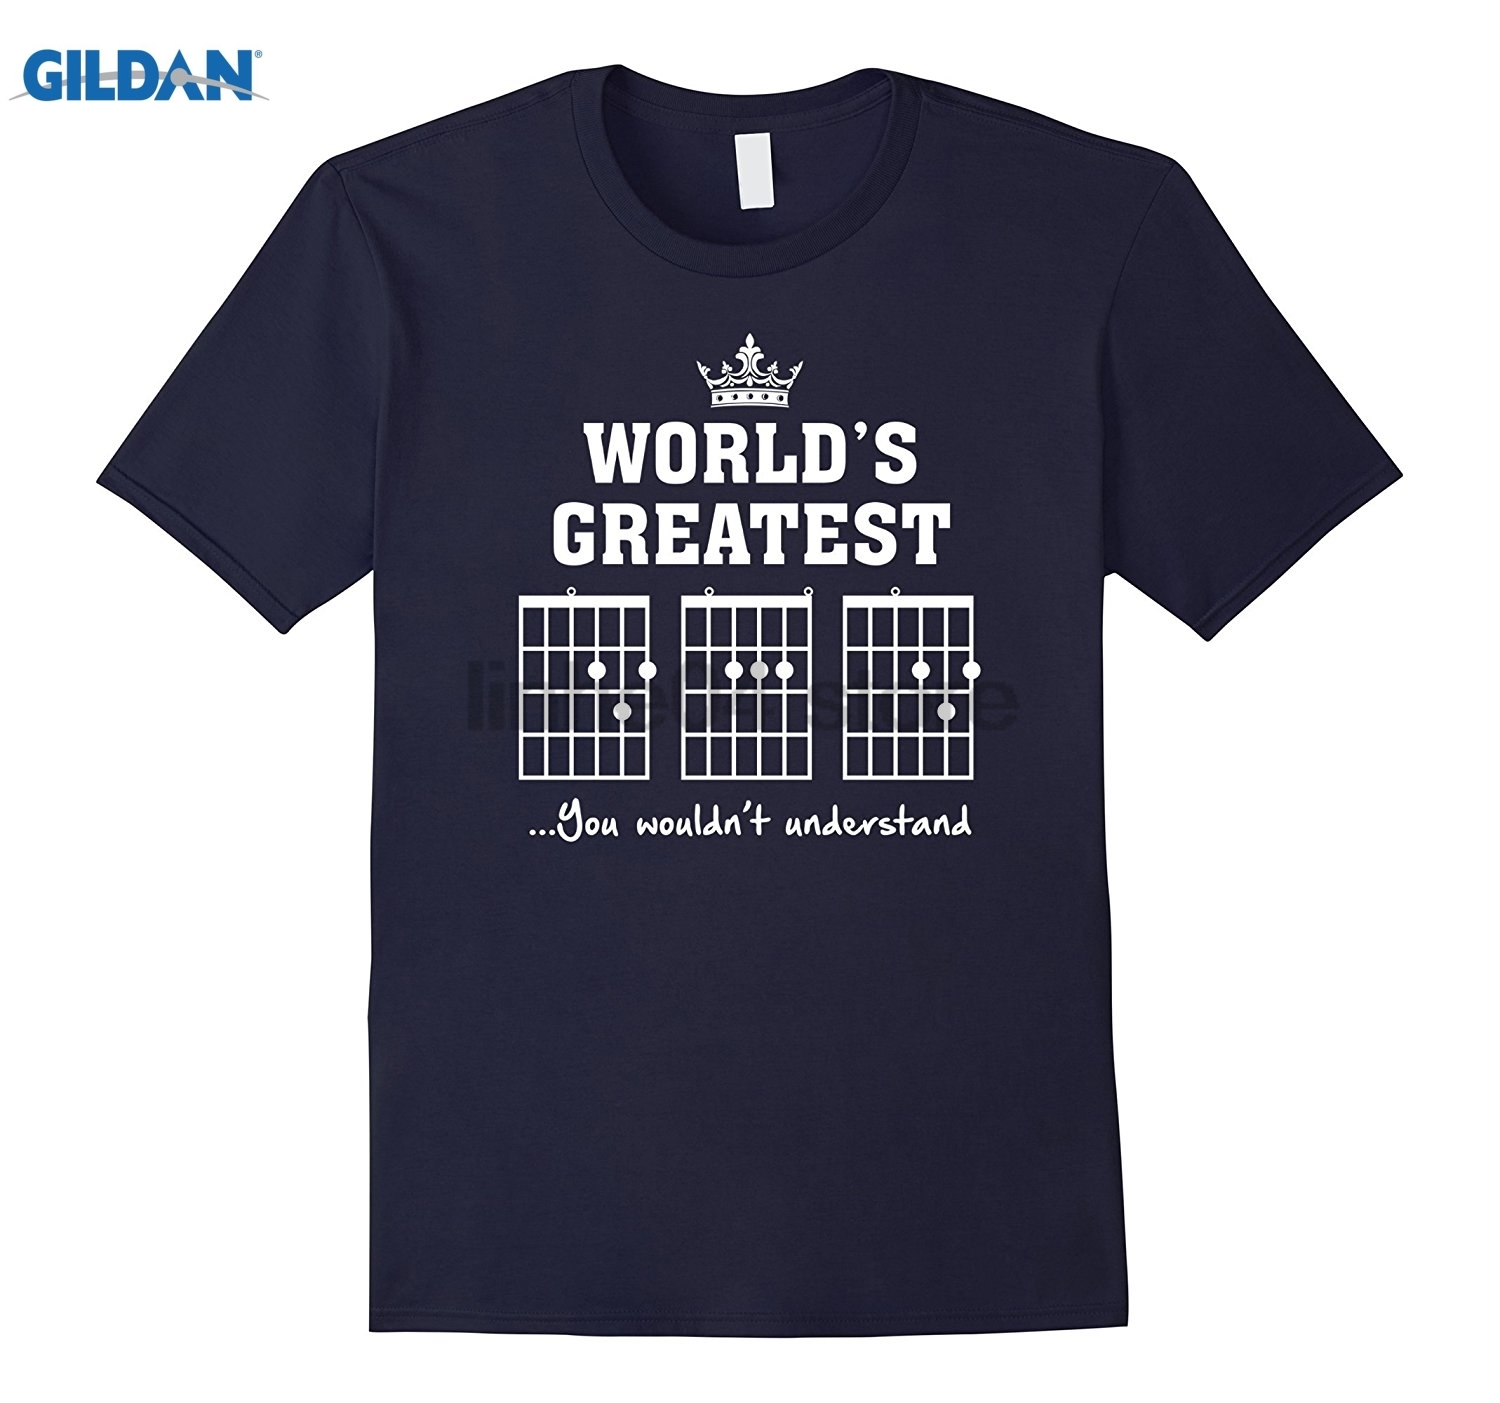 GILDAN F chord DAD funny guitar T shirt - Unique Fathers Day Gift Hot Womens T-shirt ...